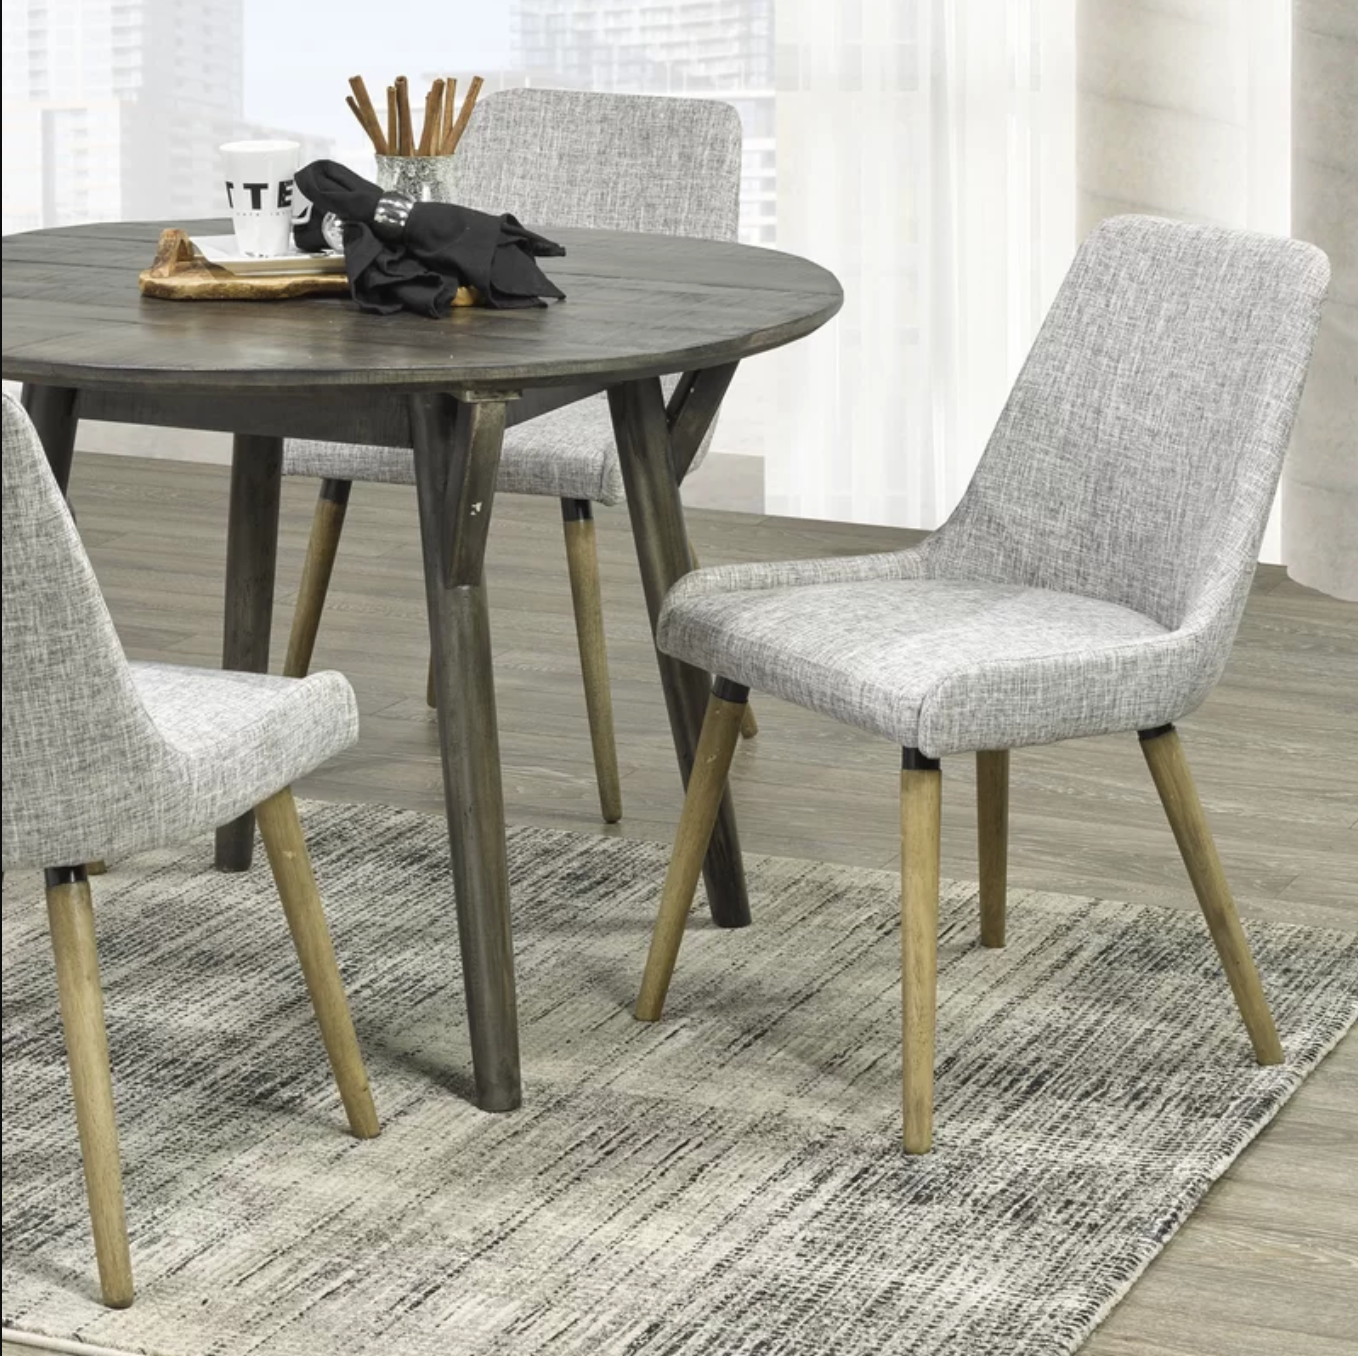 $256 for set of 2 from All Modern